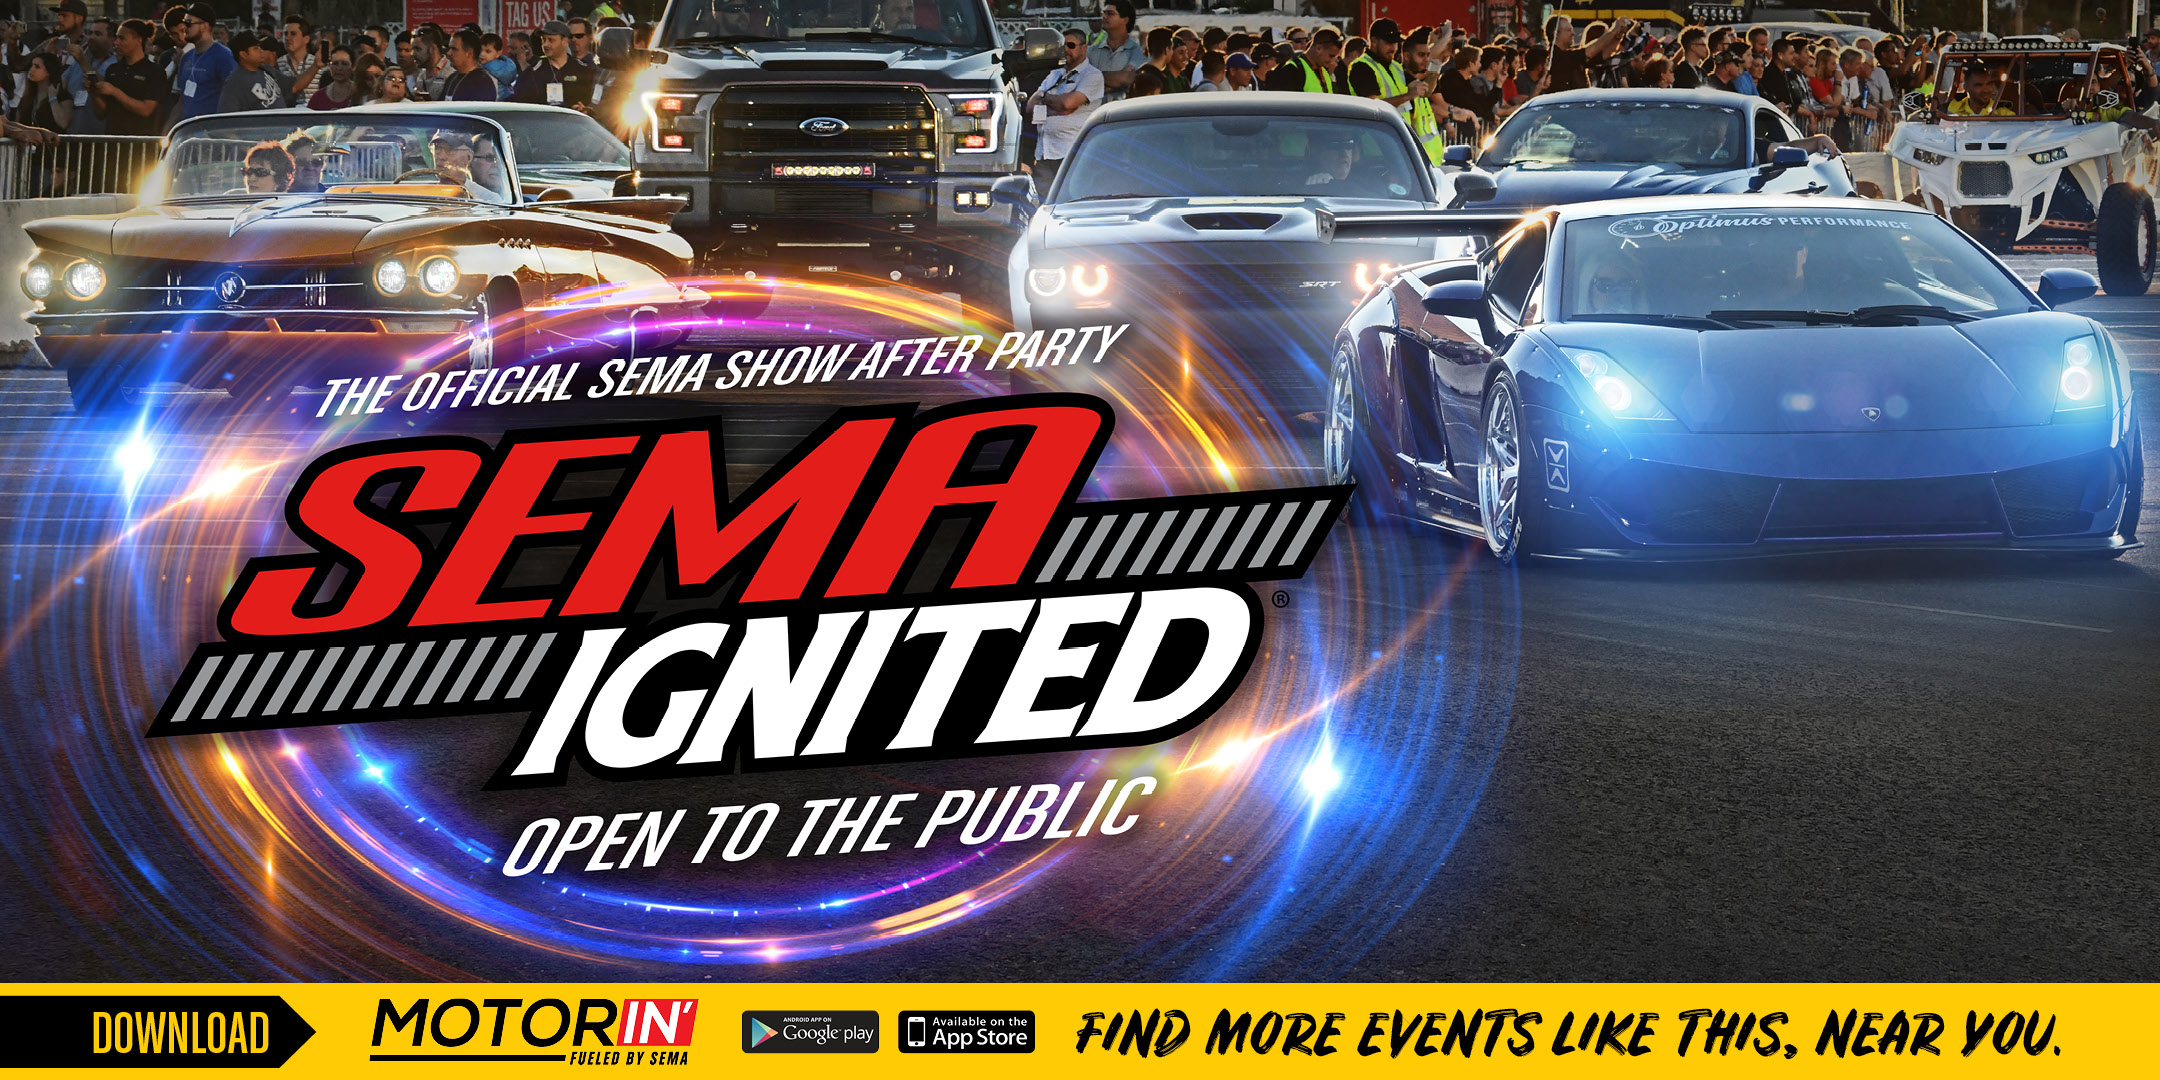 SEMA IGNITED 2019 | The Official SEMA Show After Party